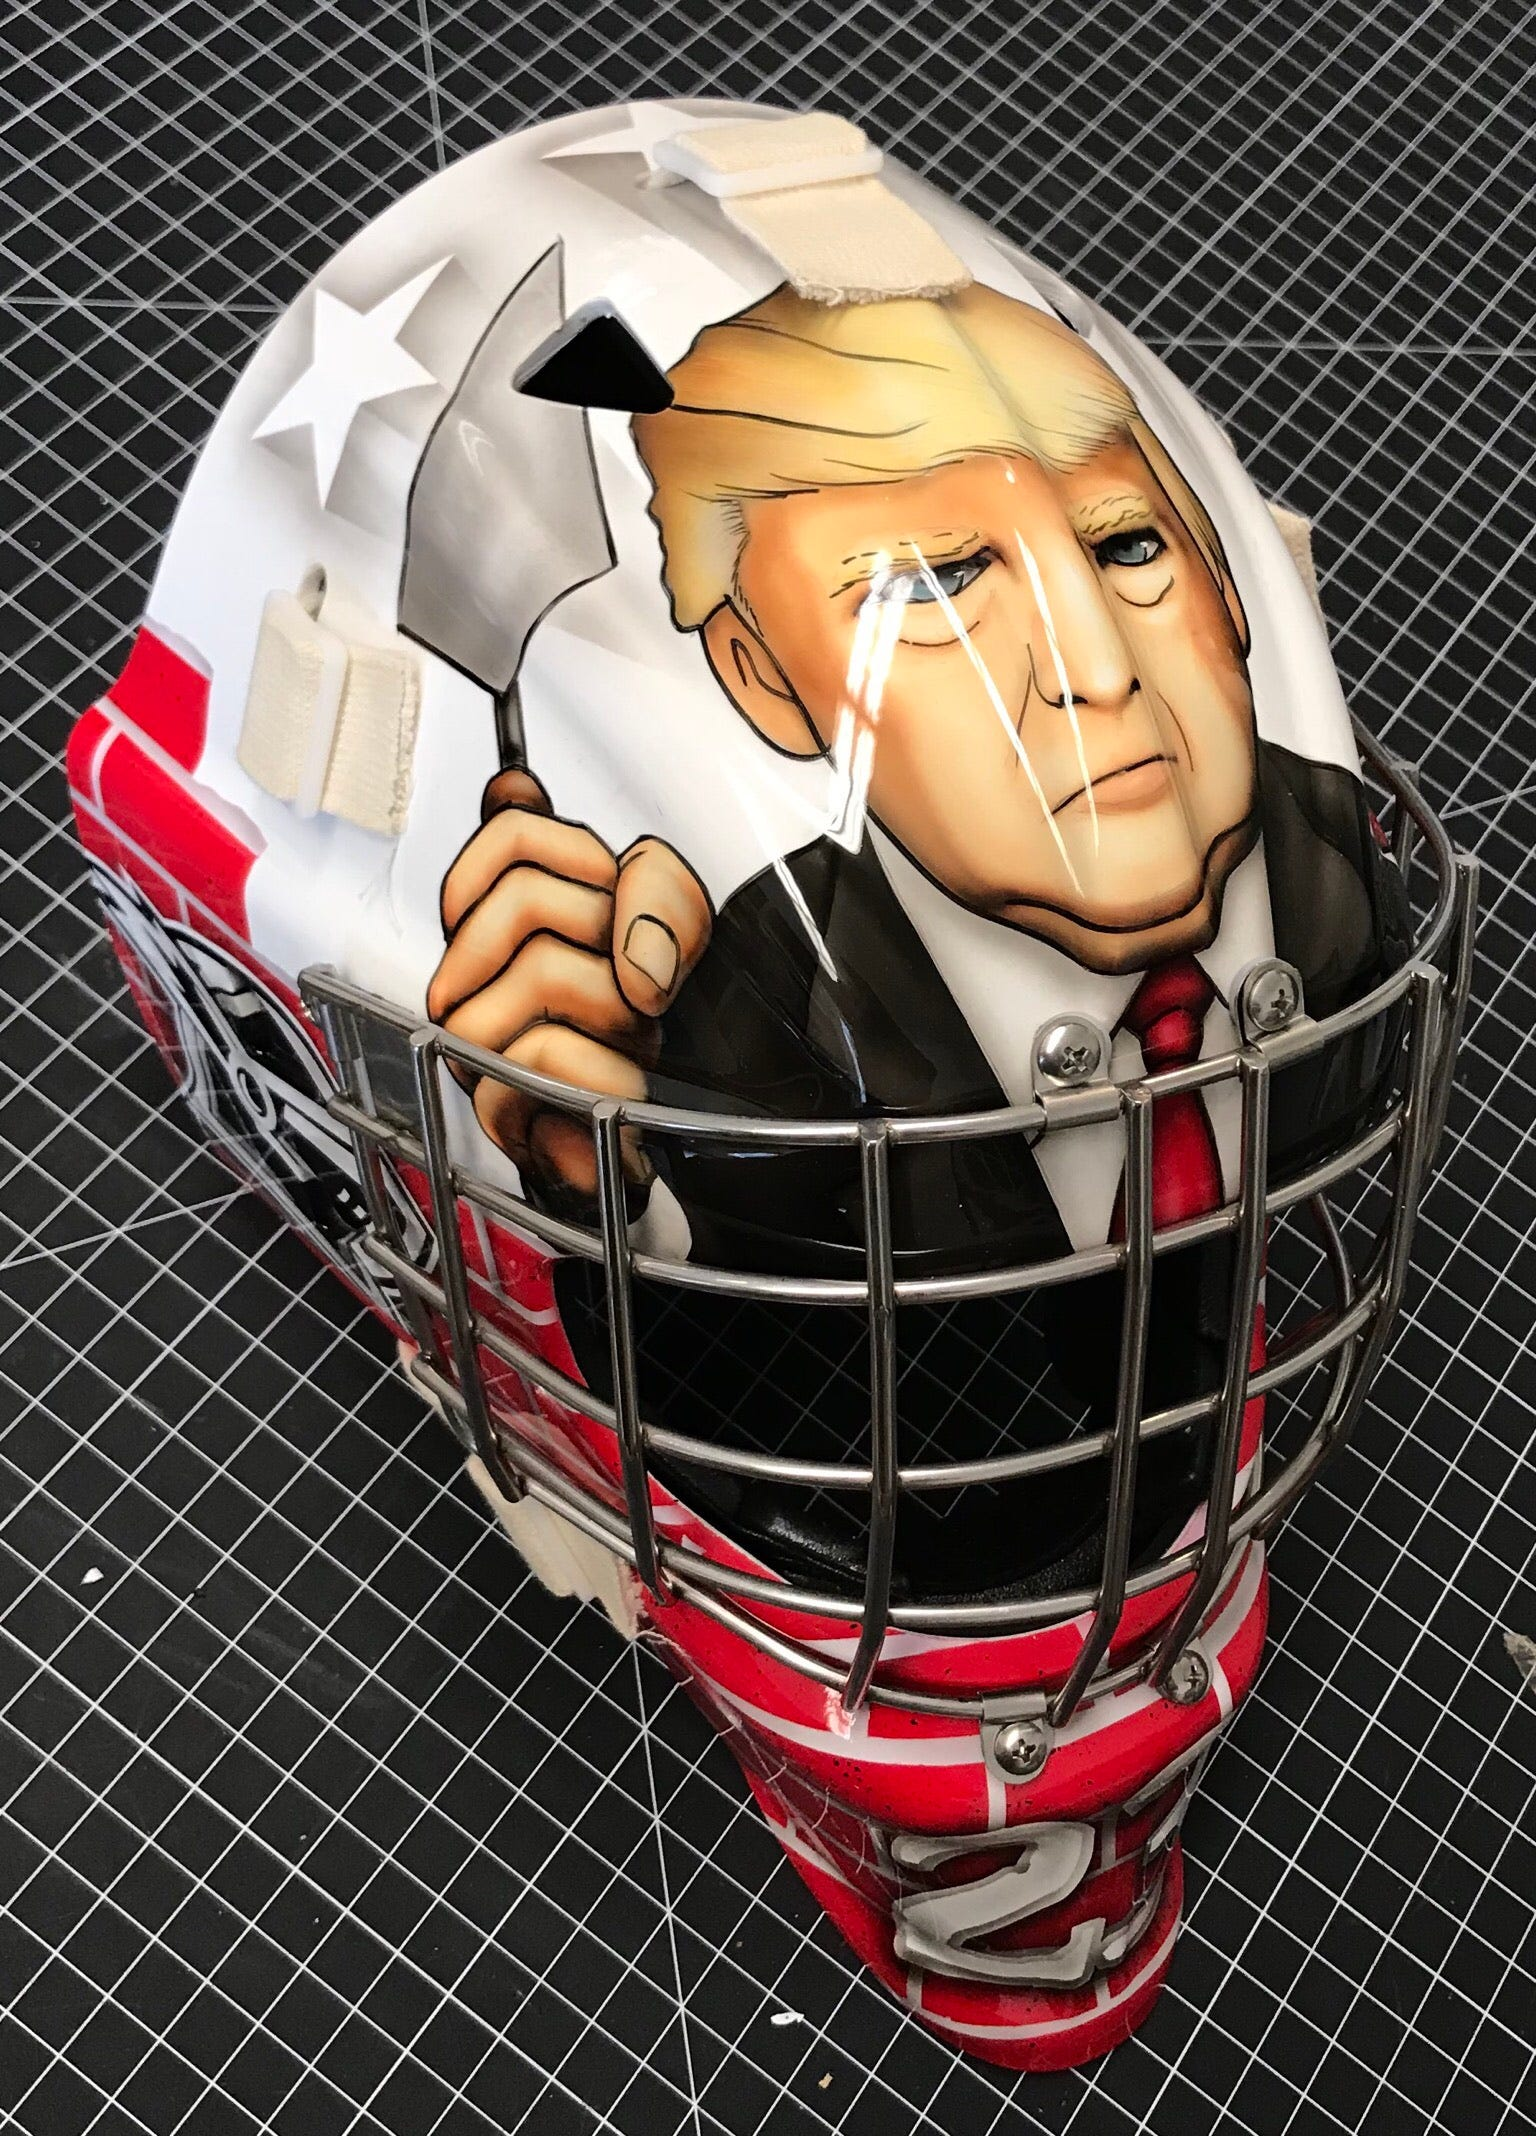 Youth hockey goalie's mask features Donald Trump in brick wall theme